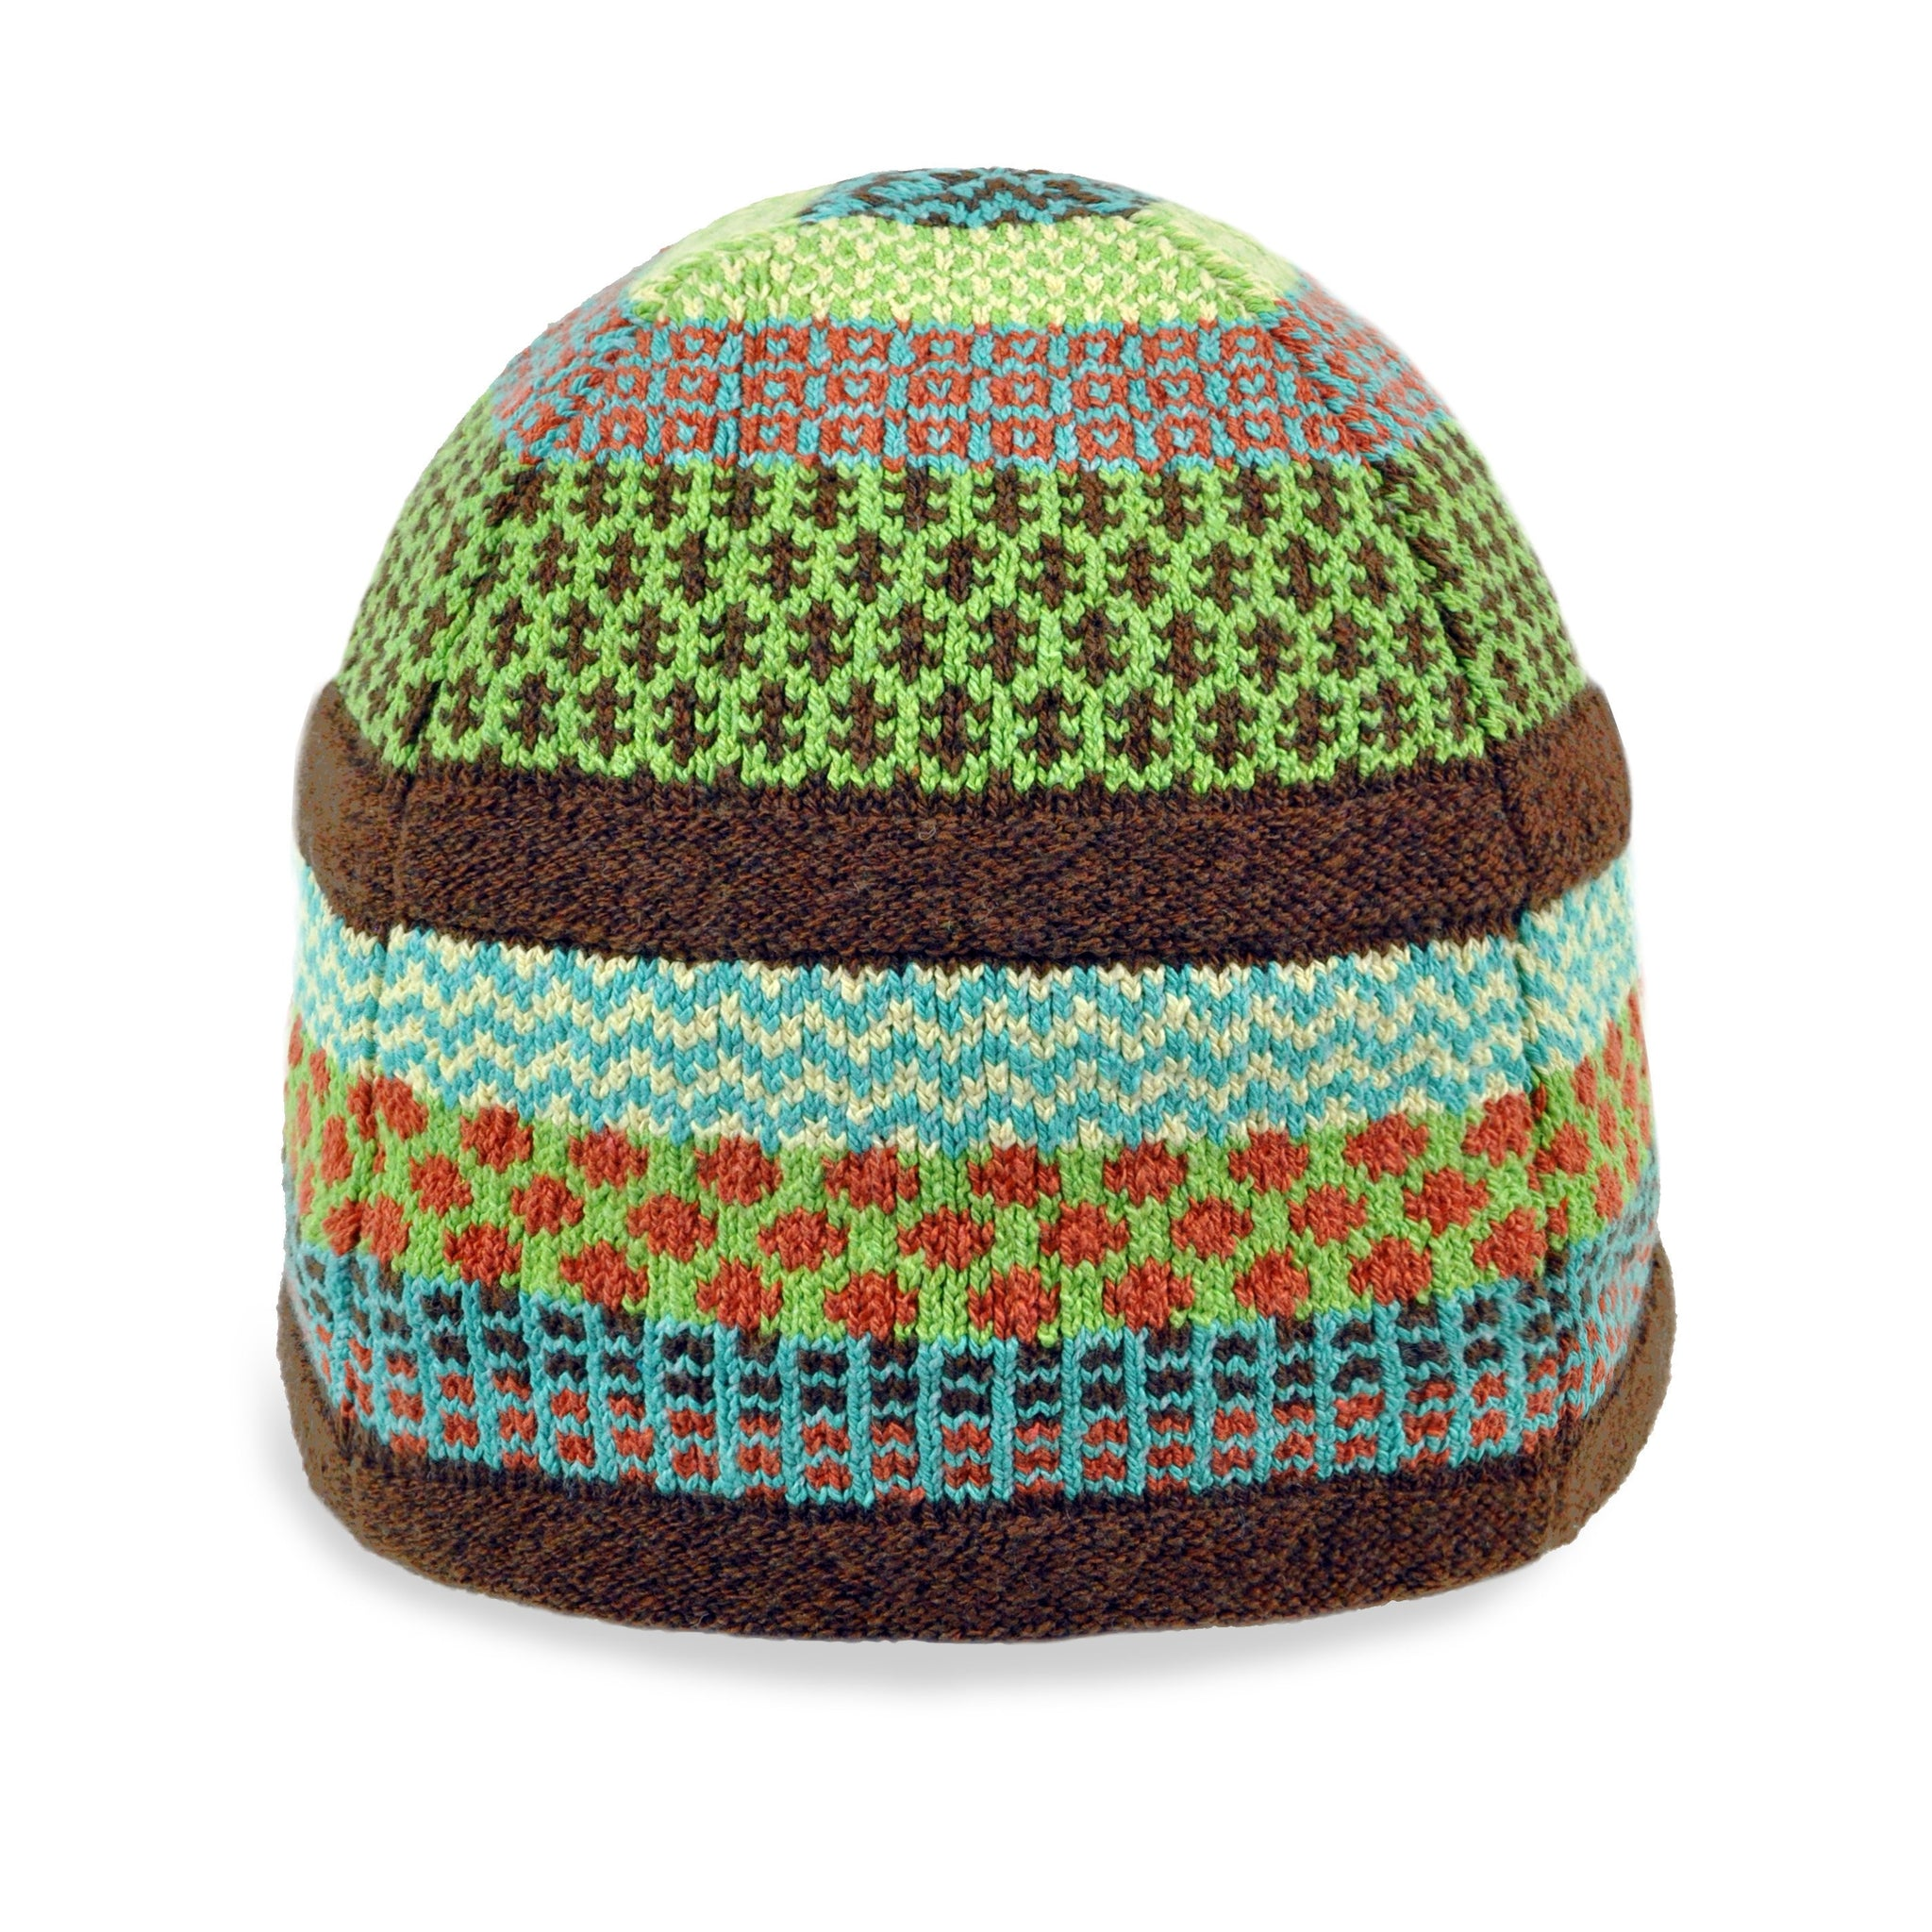 Knit Hat - Saffron